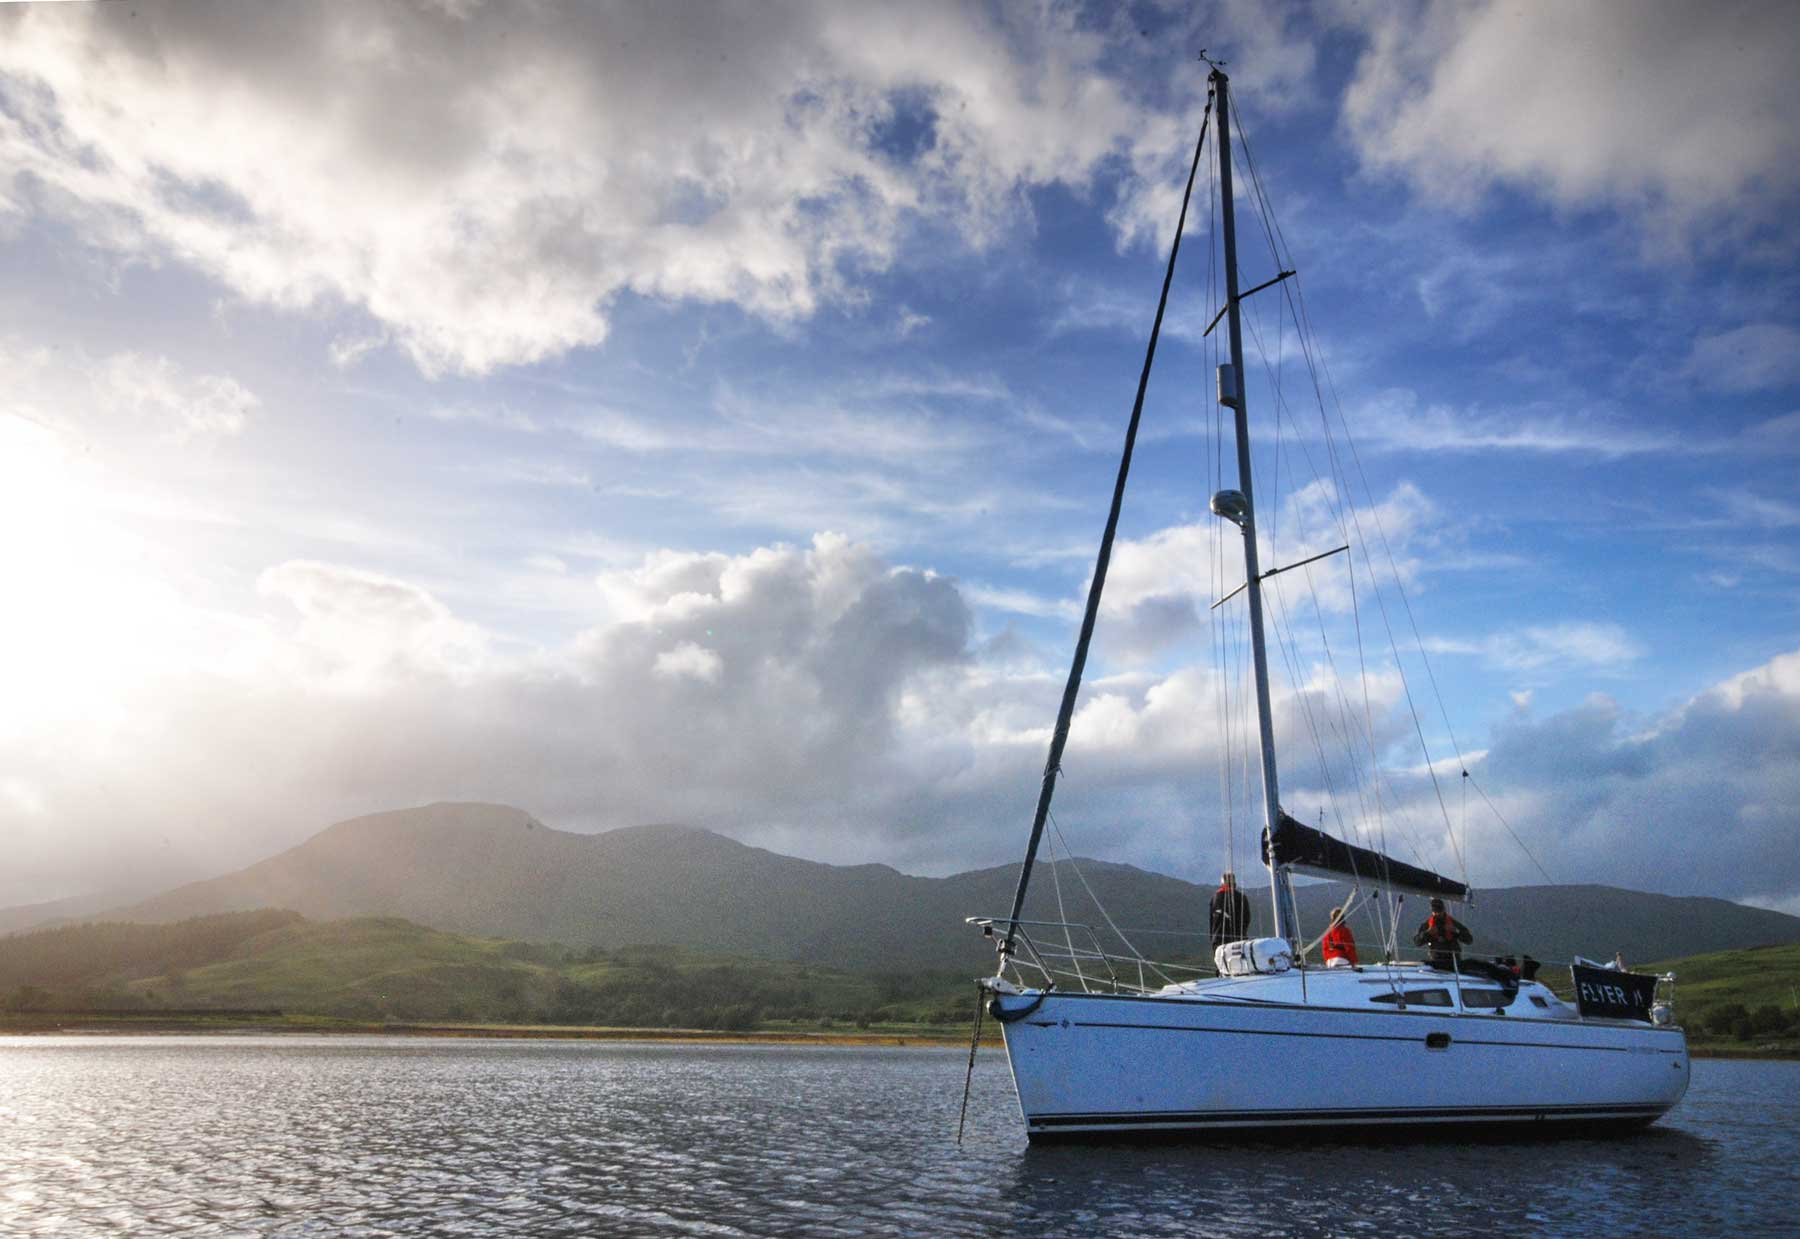 Sailing in Scotland for Advanced Beginners: RYA Day Skipper Course